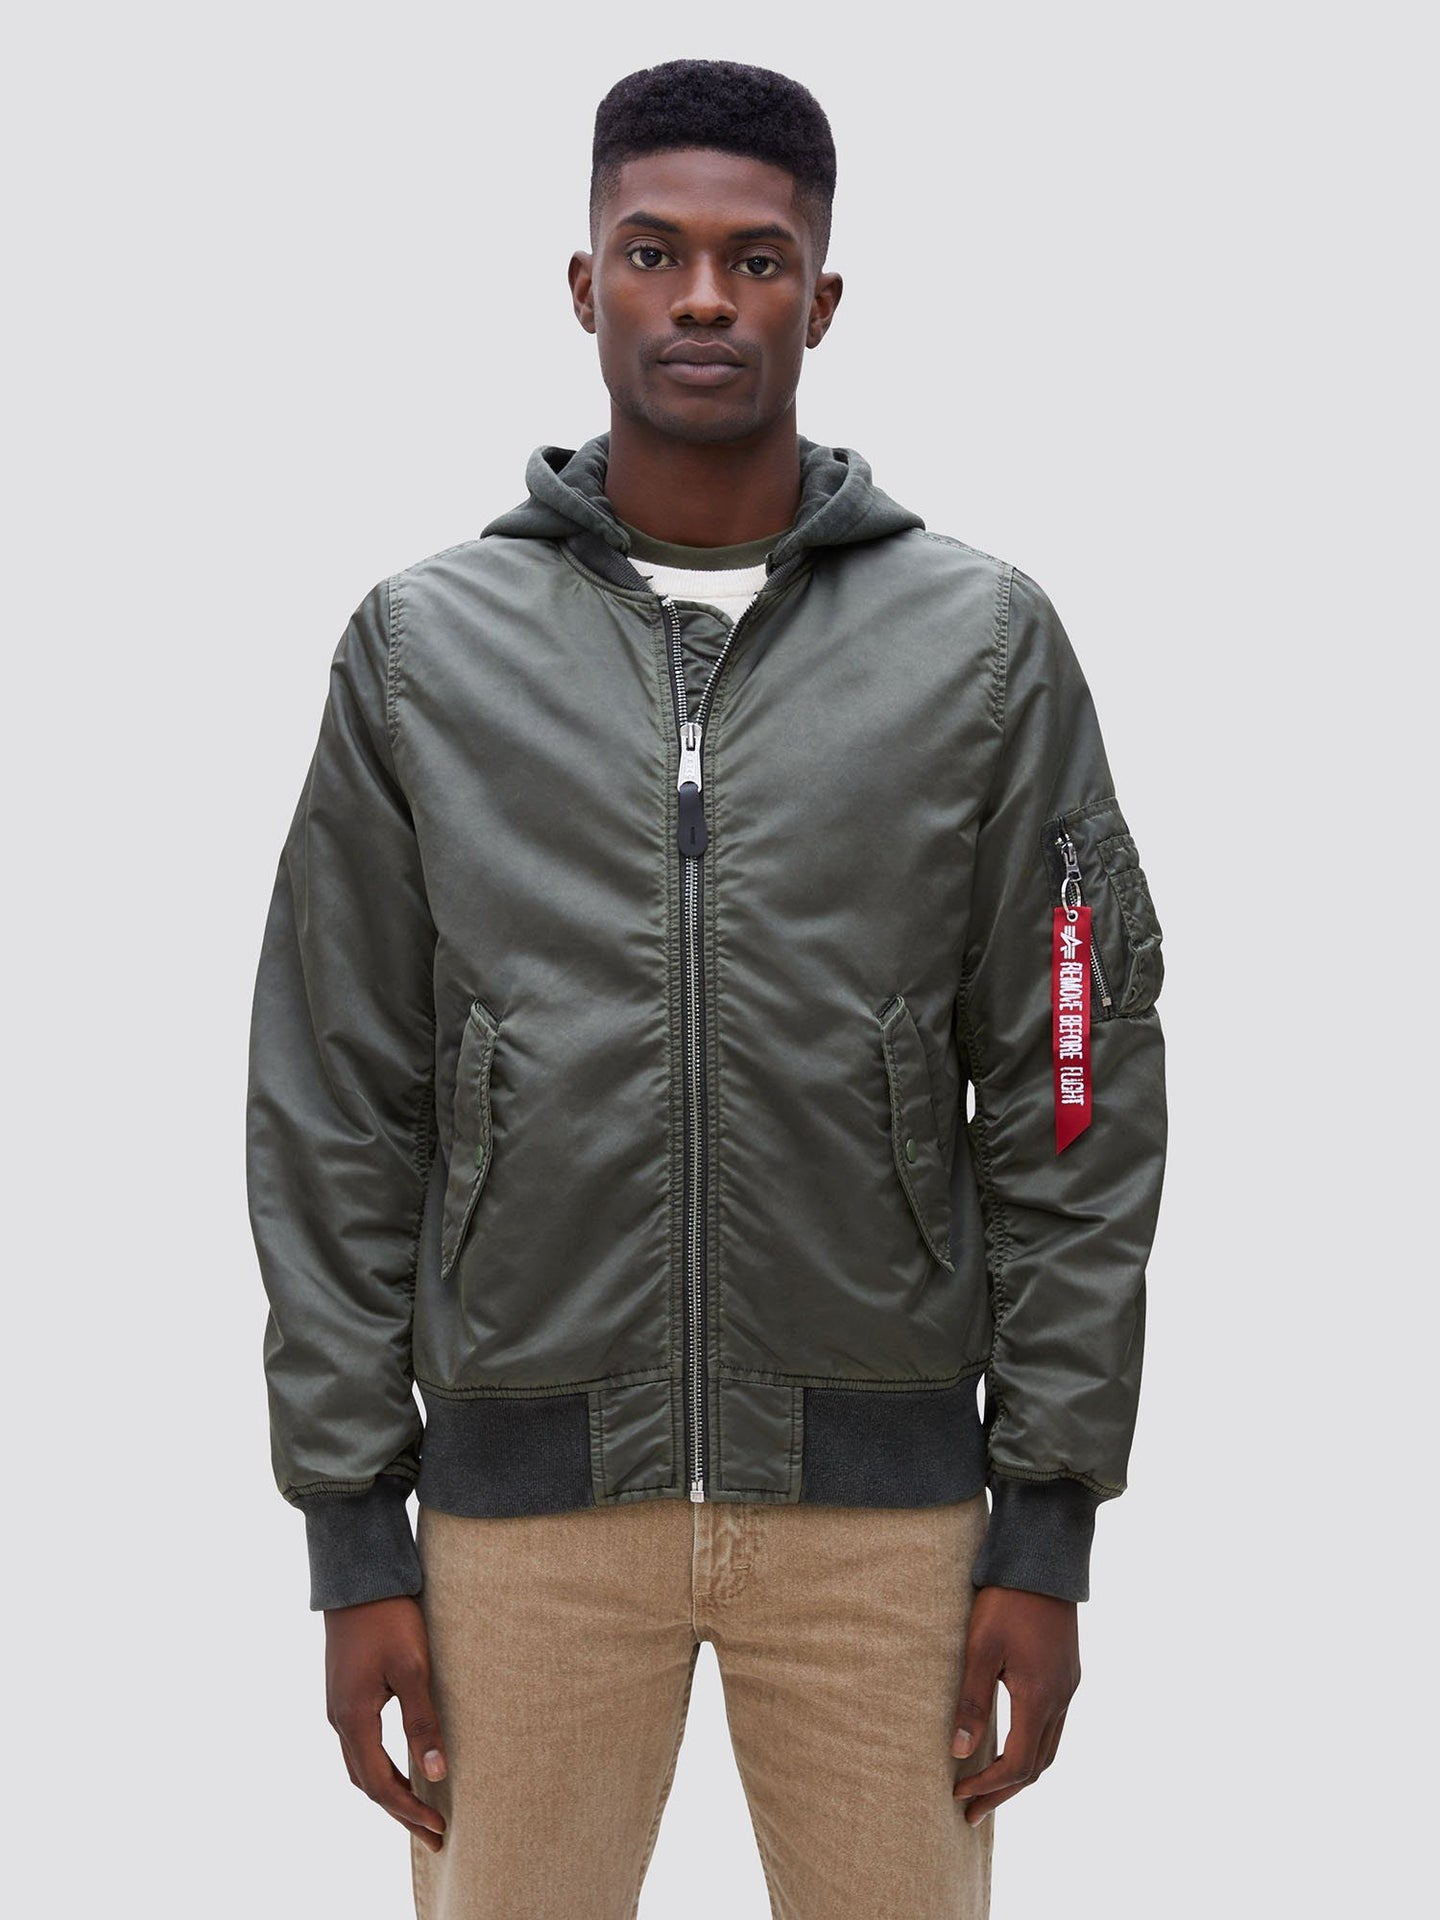 L-2B HOODED BATTLEWASH BOMBER JACKET SALE Alpha Industries SAGE 2XL